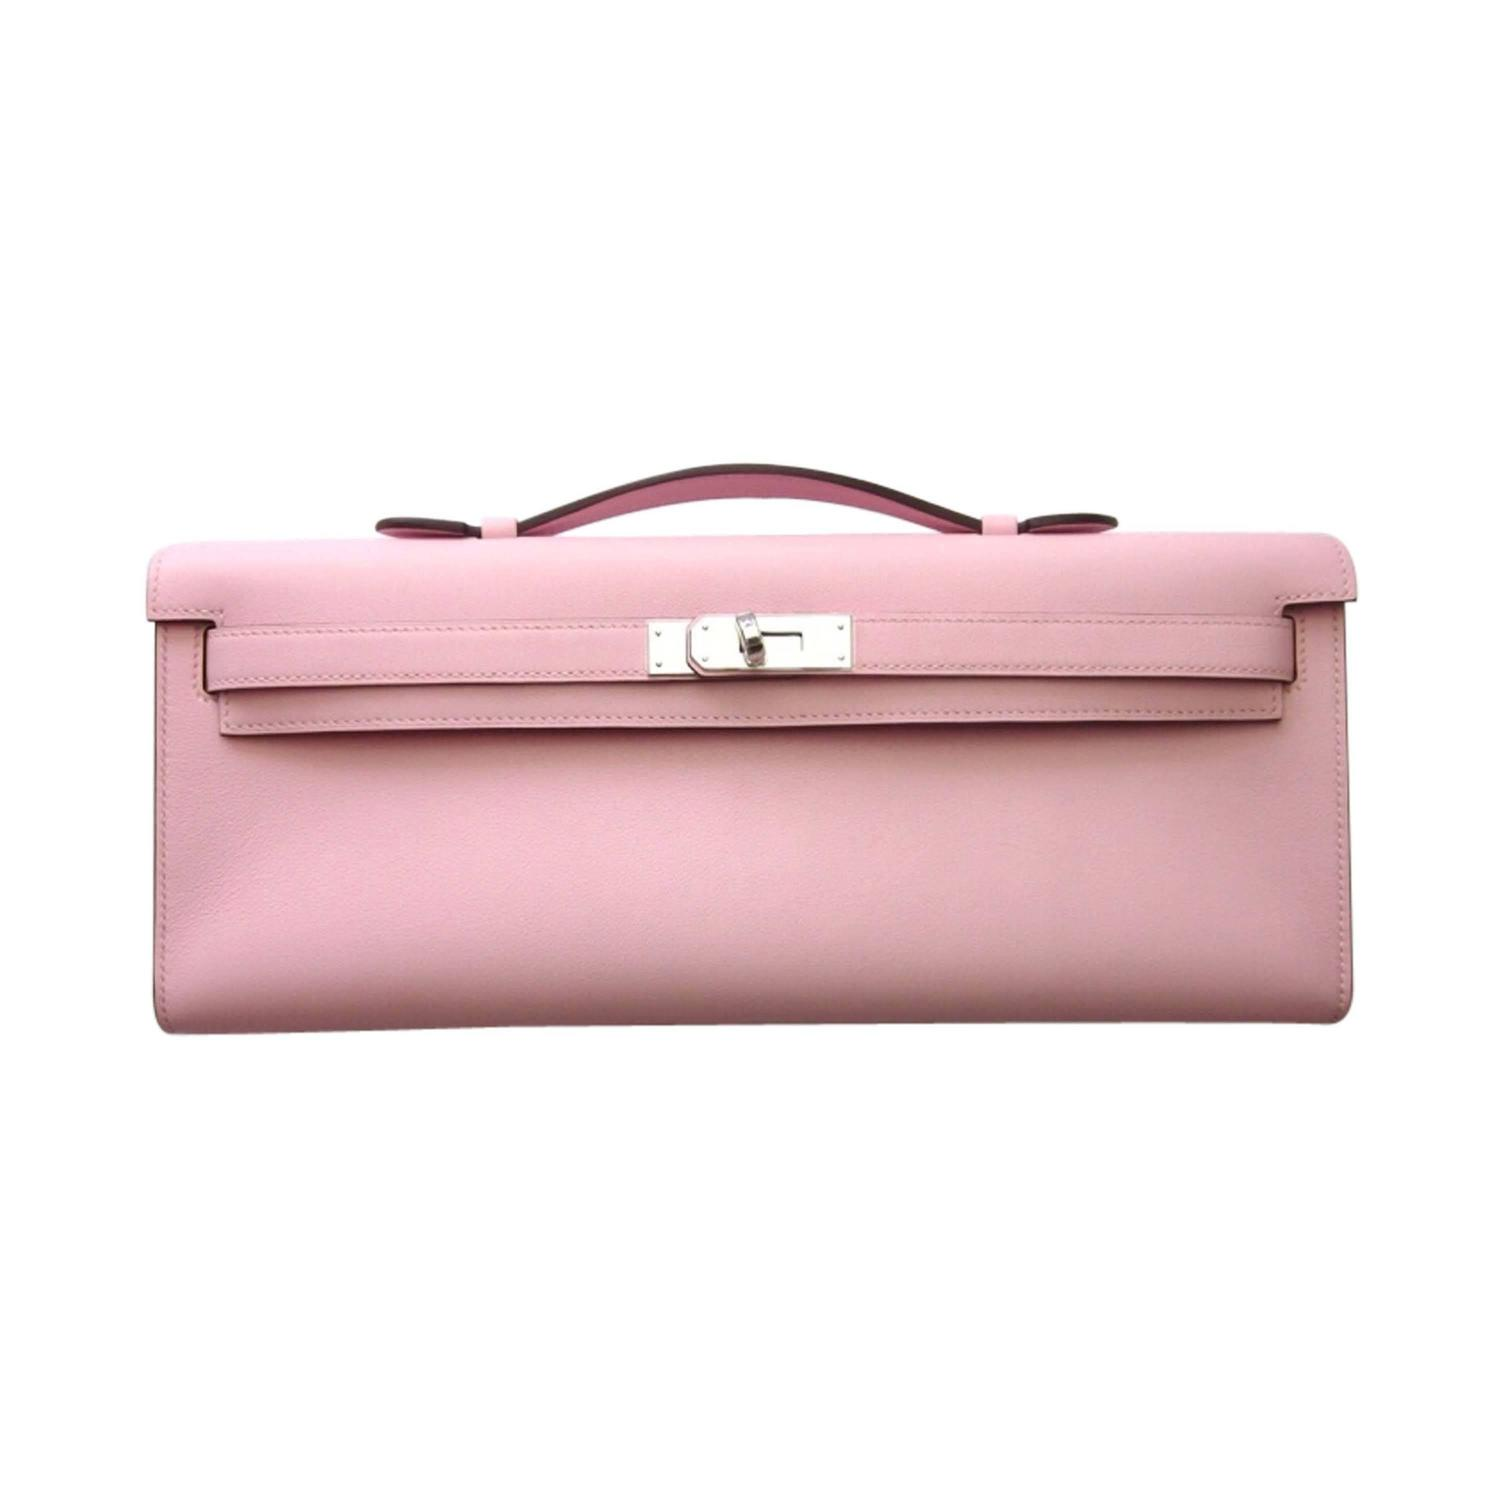 fake hermes kelly porc